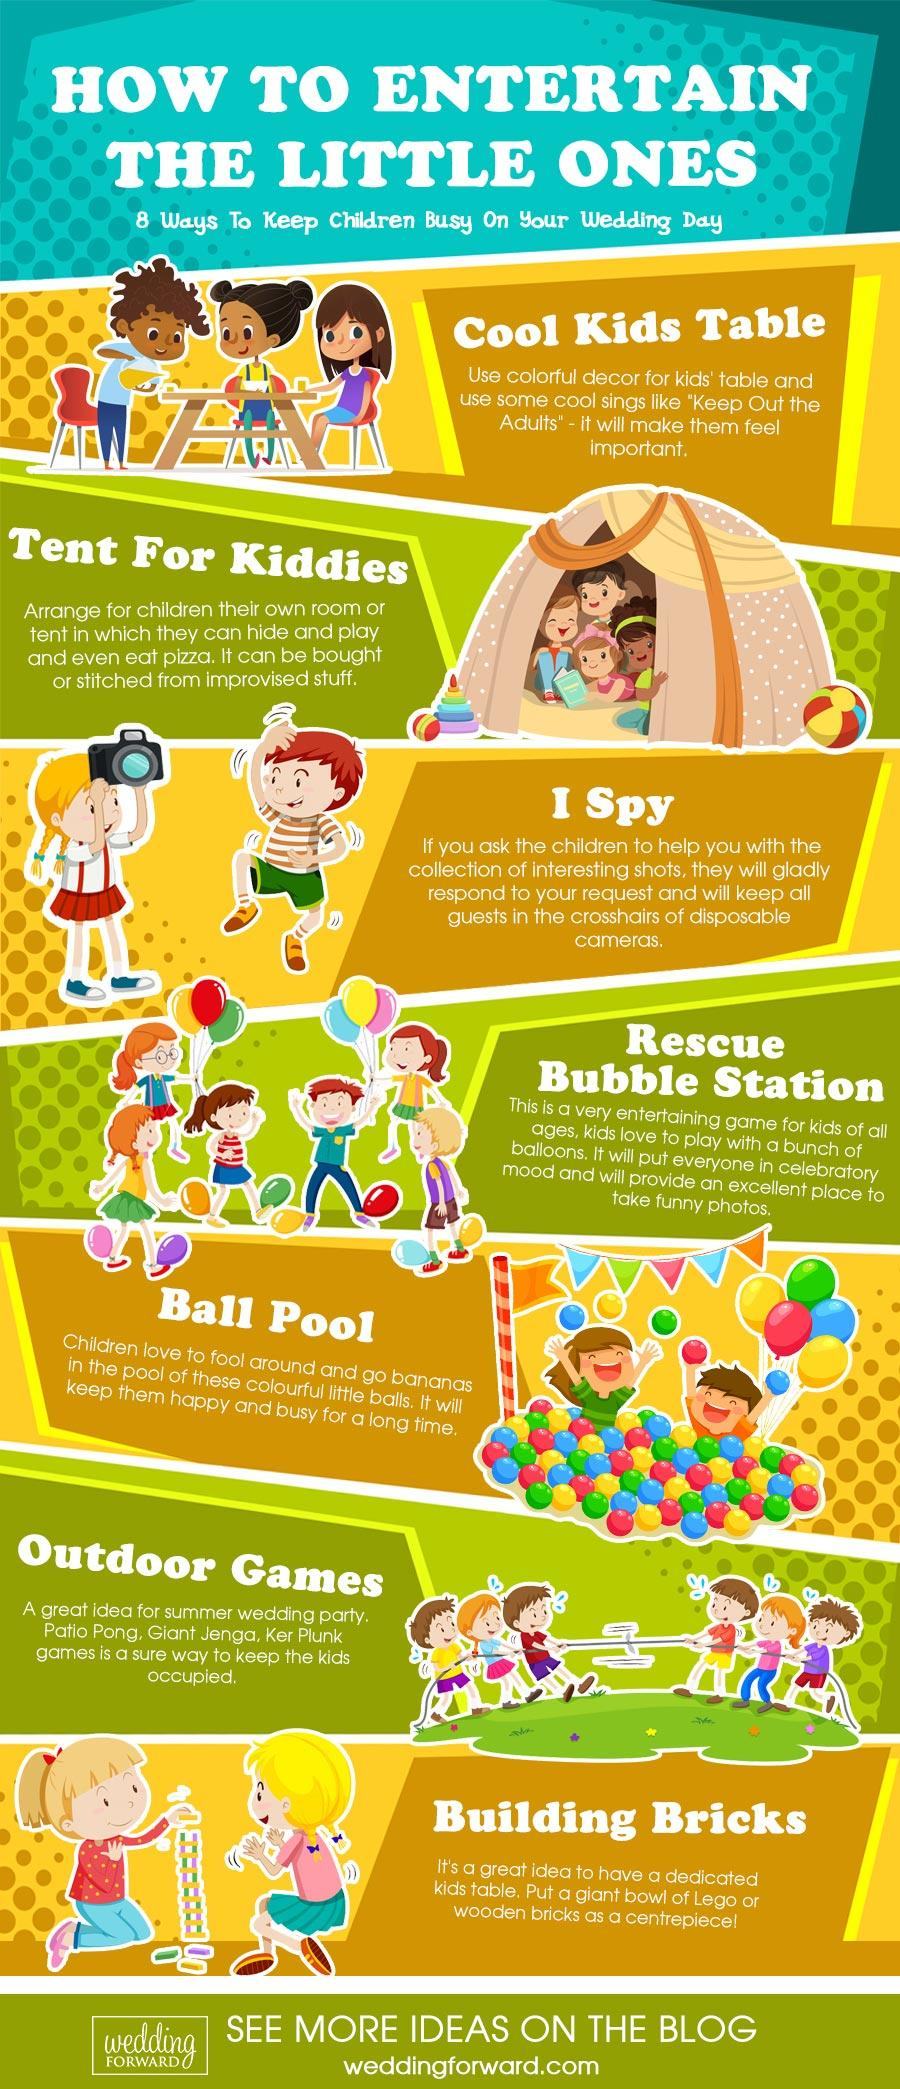 wedding game for kids ways to keep children busy